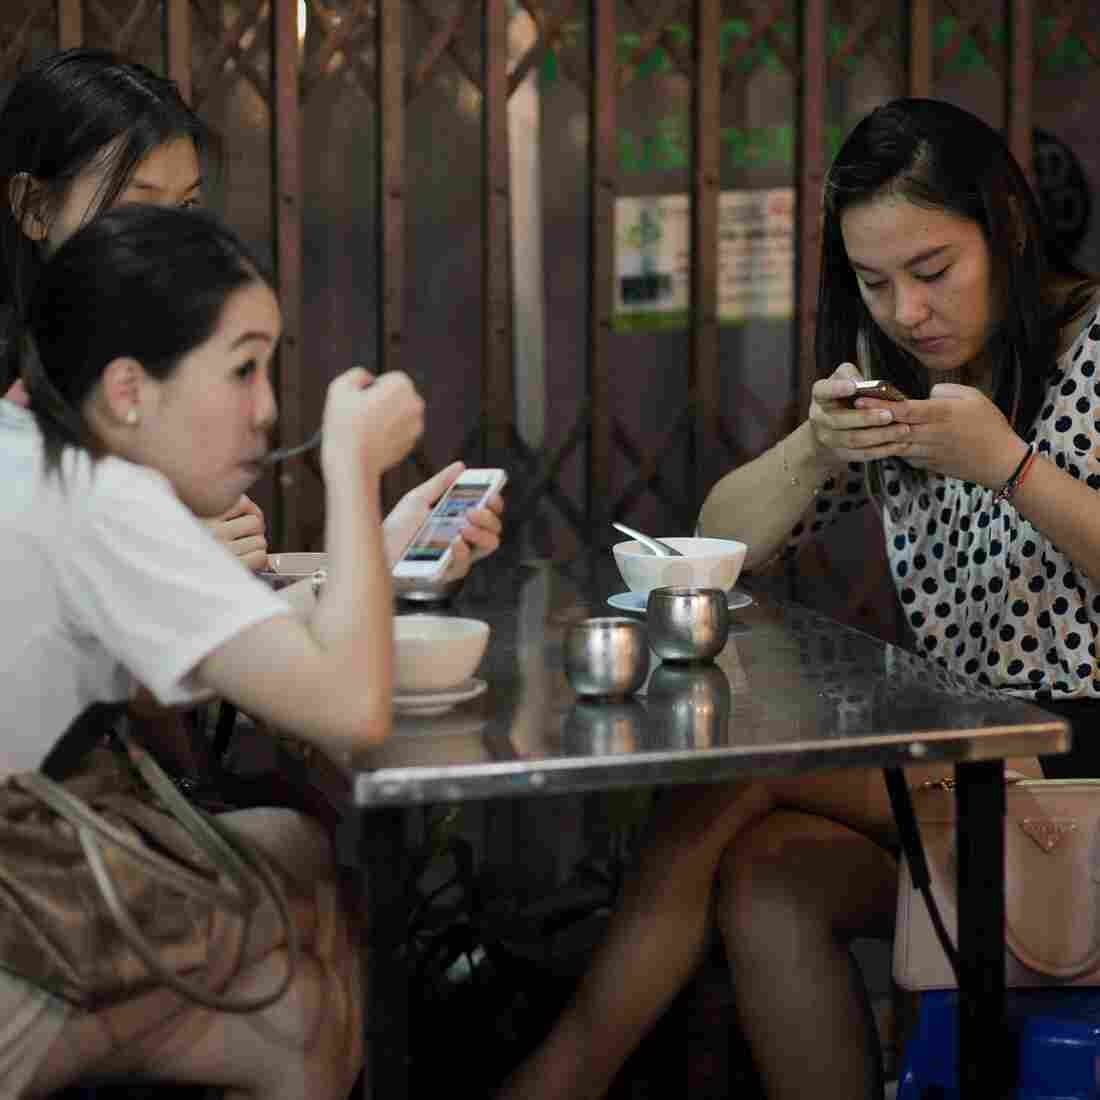 What To Do With Your Smartphone While You're Having Dinner